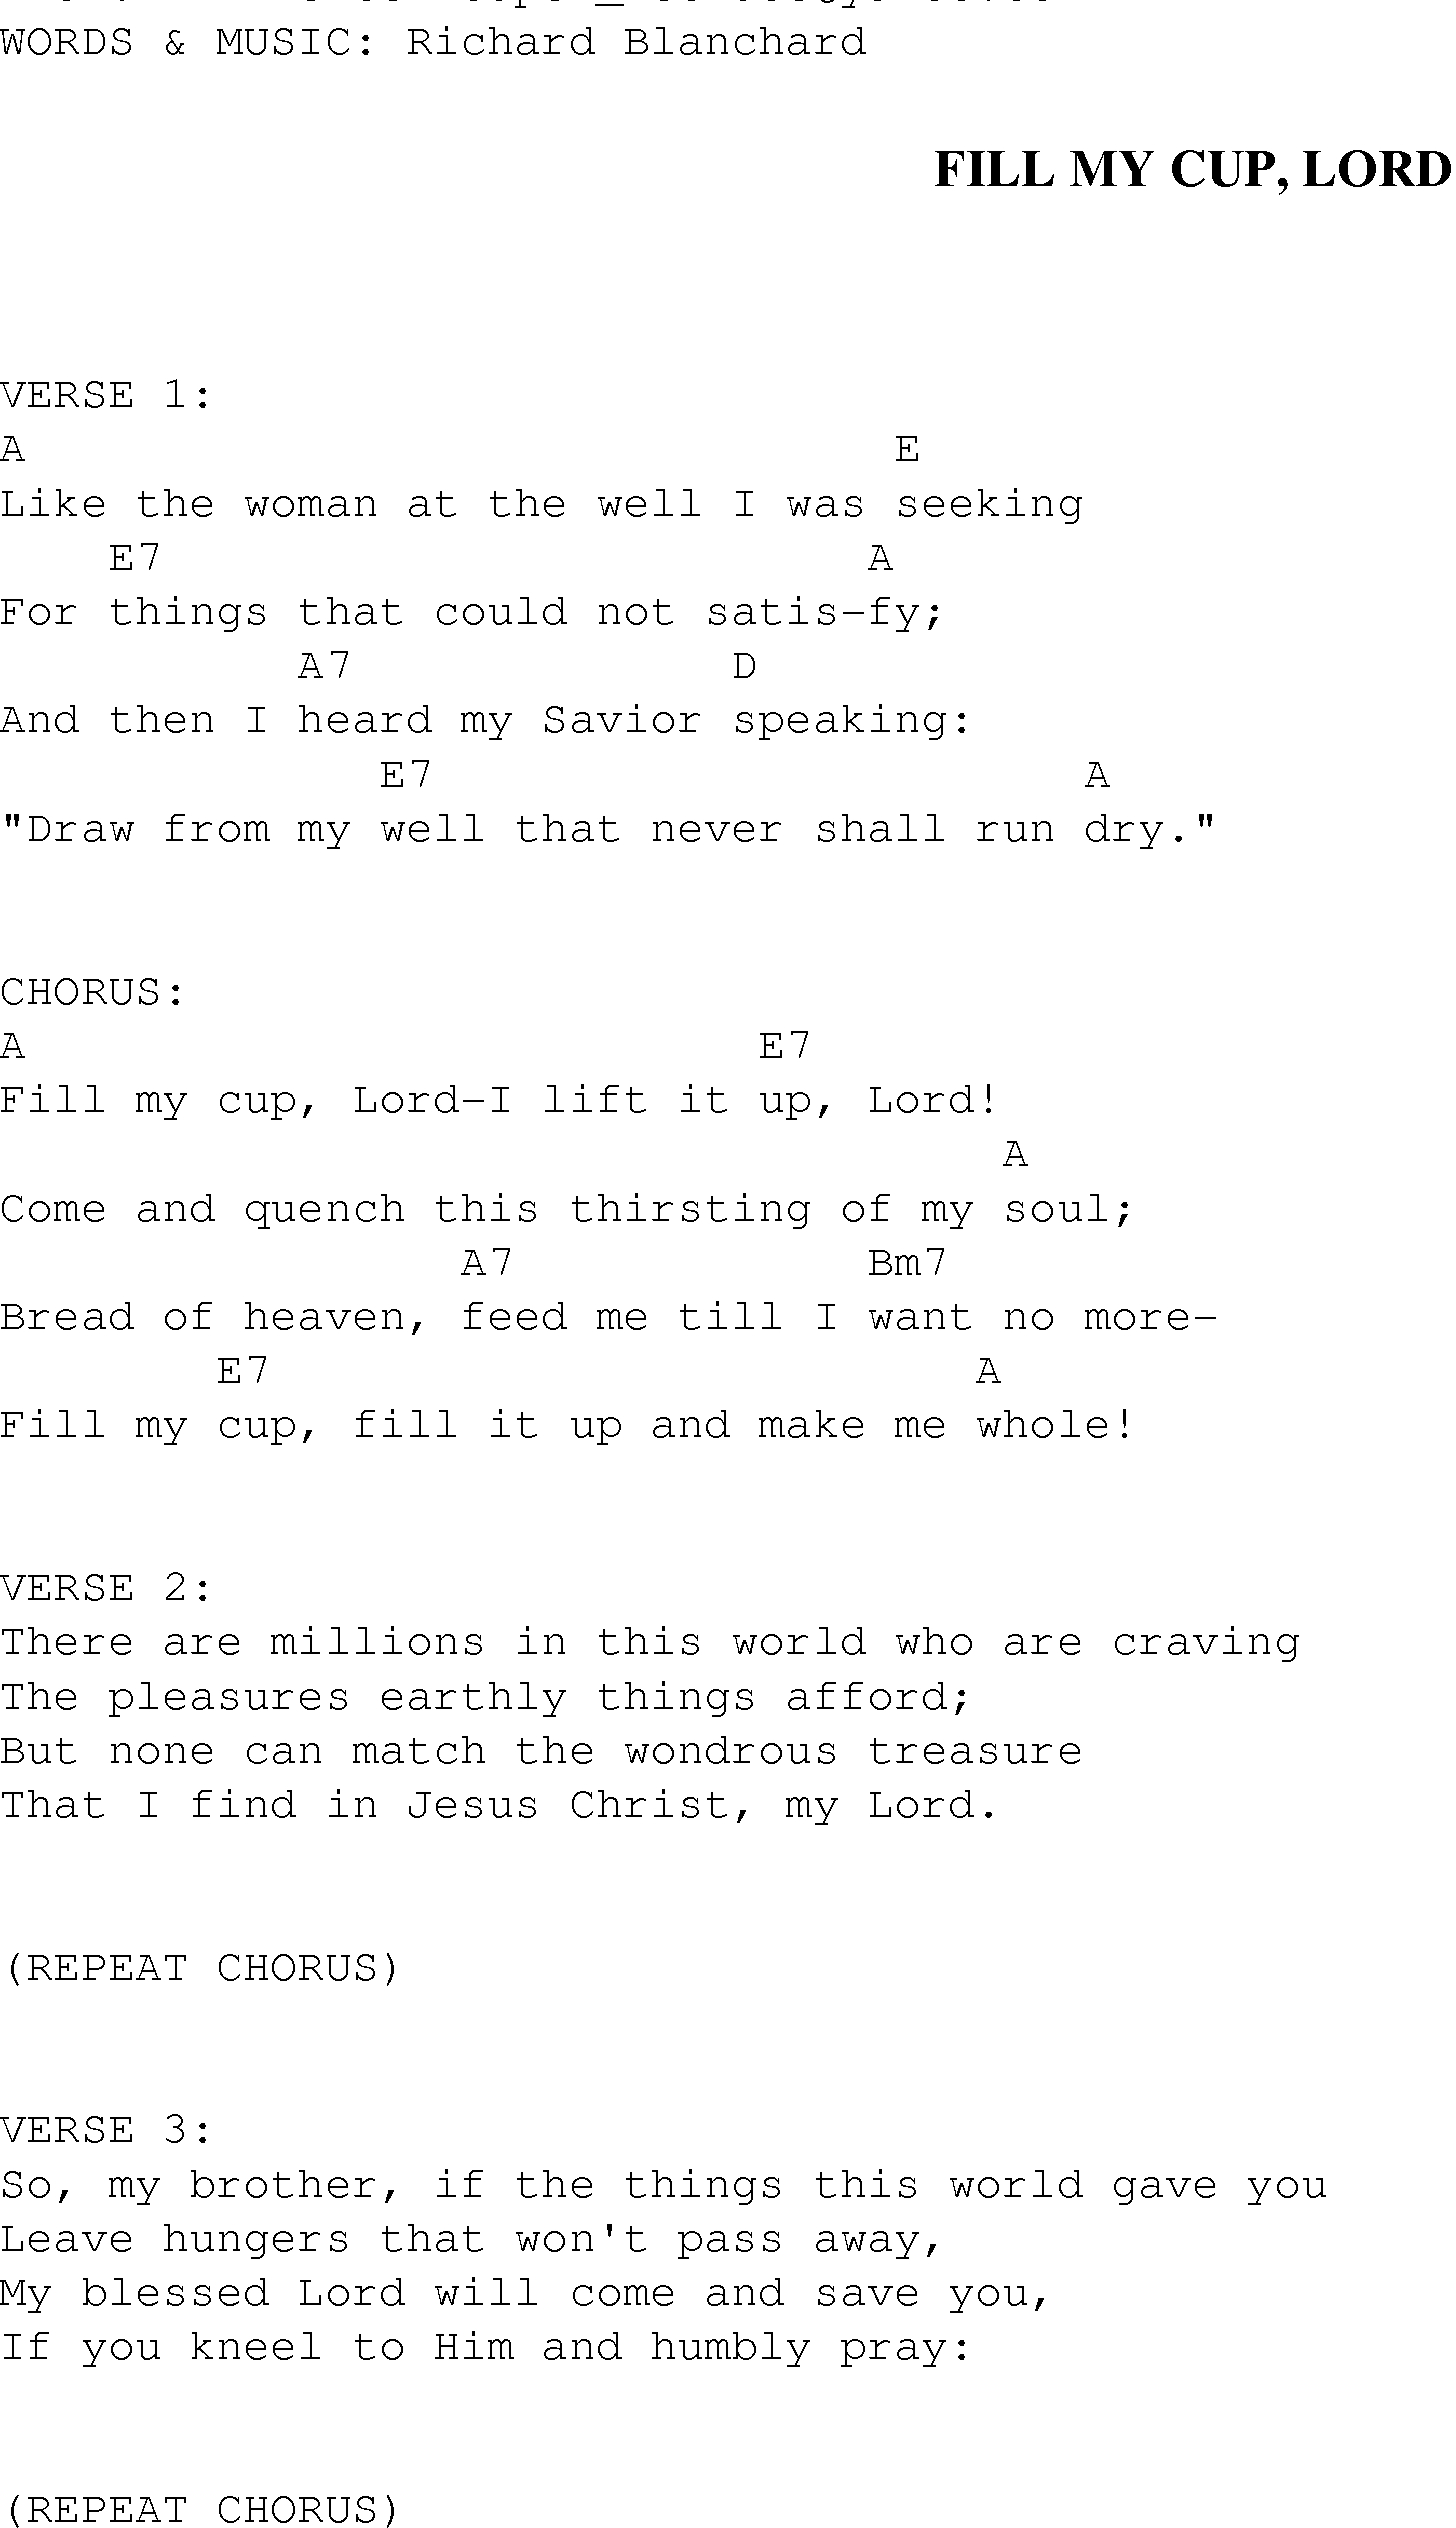 Fill My Cup Lord - Christian Gospel Song Lyrics And Chords - Free Printable Lyrics To Christian Songs